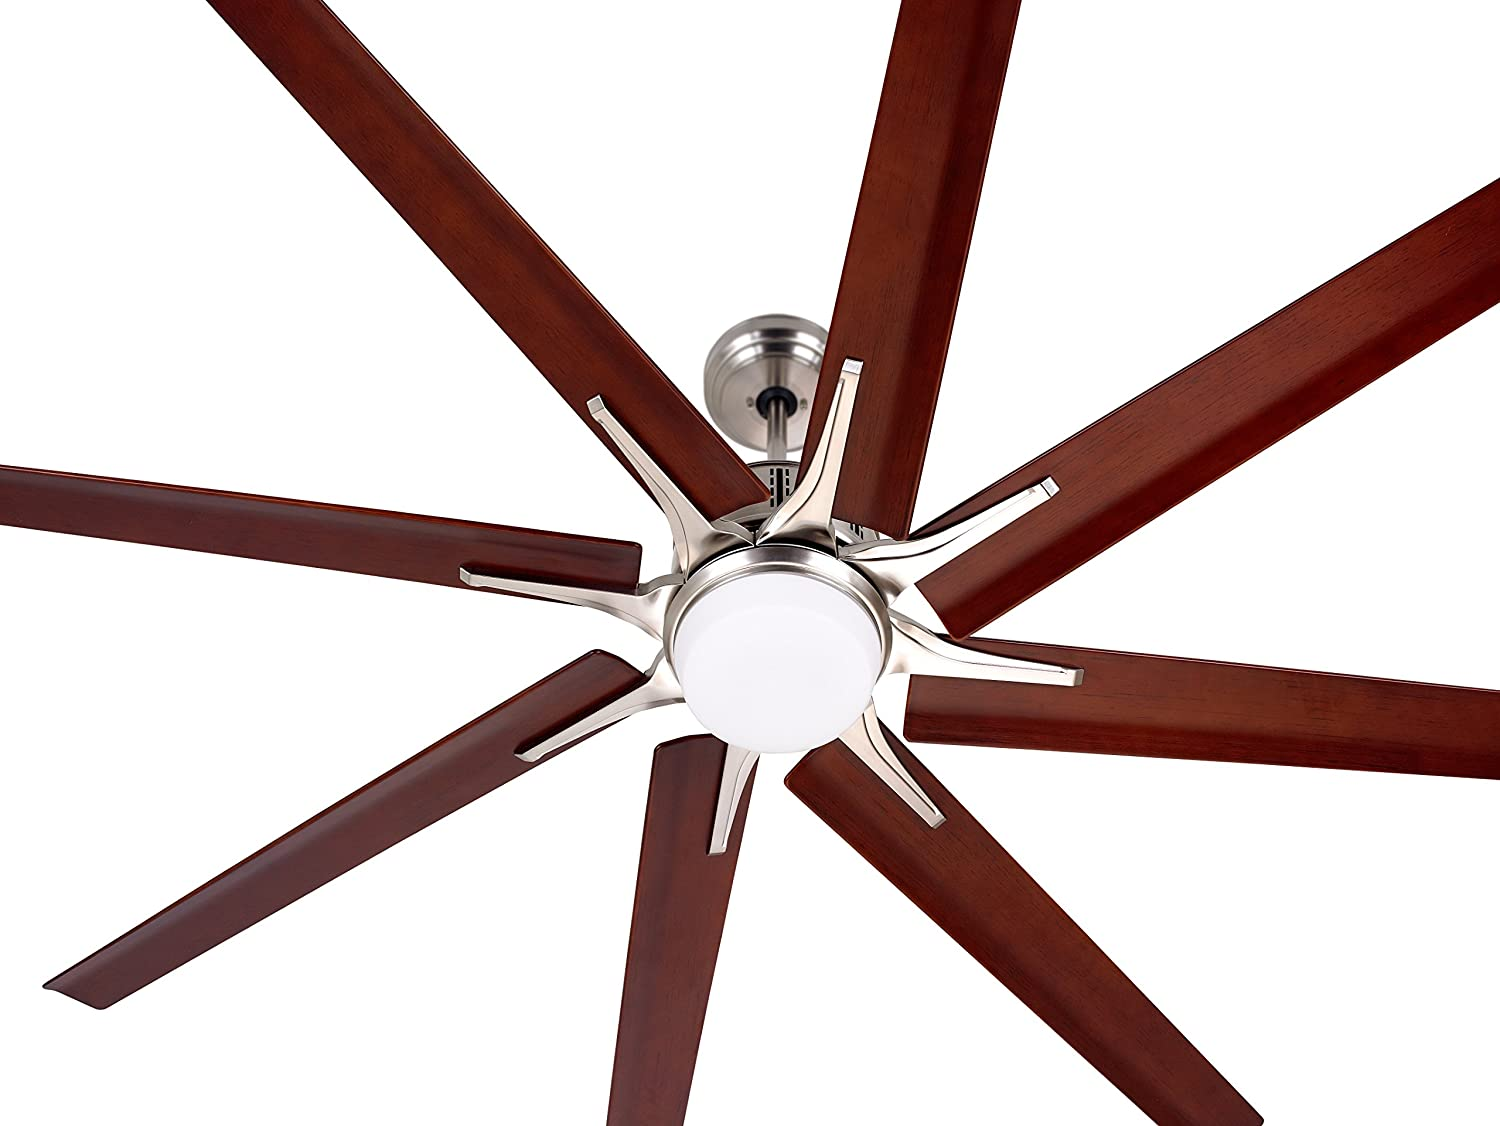 Emerson aira eco 72 inch oil rubbed bronze modern ceiling fan free - Emerson Cf985bs Damp Rated Aira Eco Modern Ceiling Fan With Light Wall Control And 72 Blades Brushed Steel Finish Amazon Com